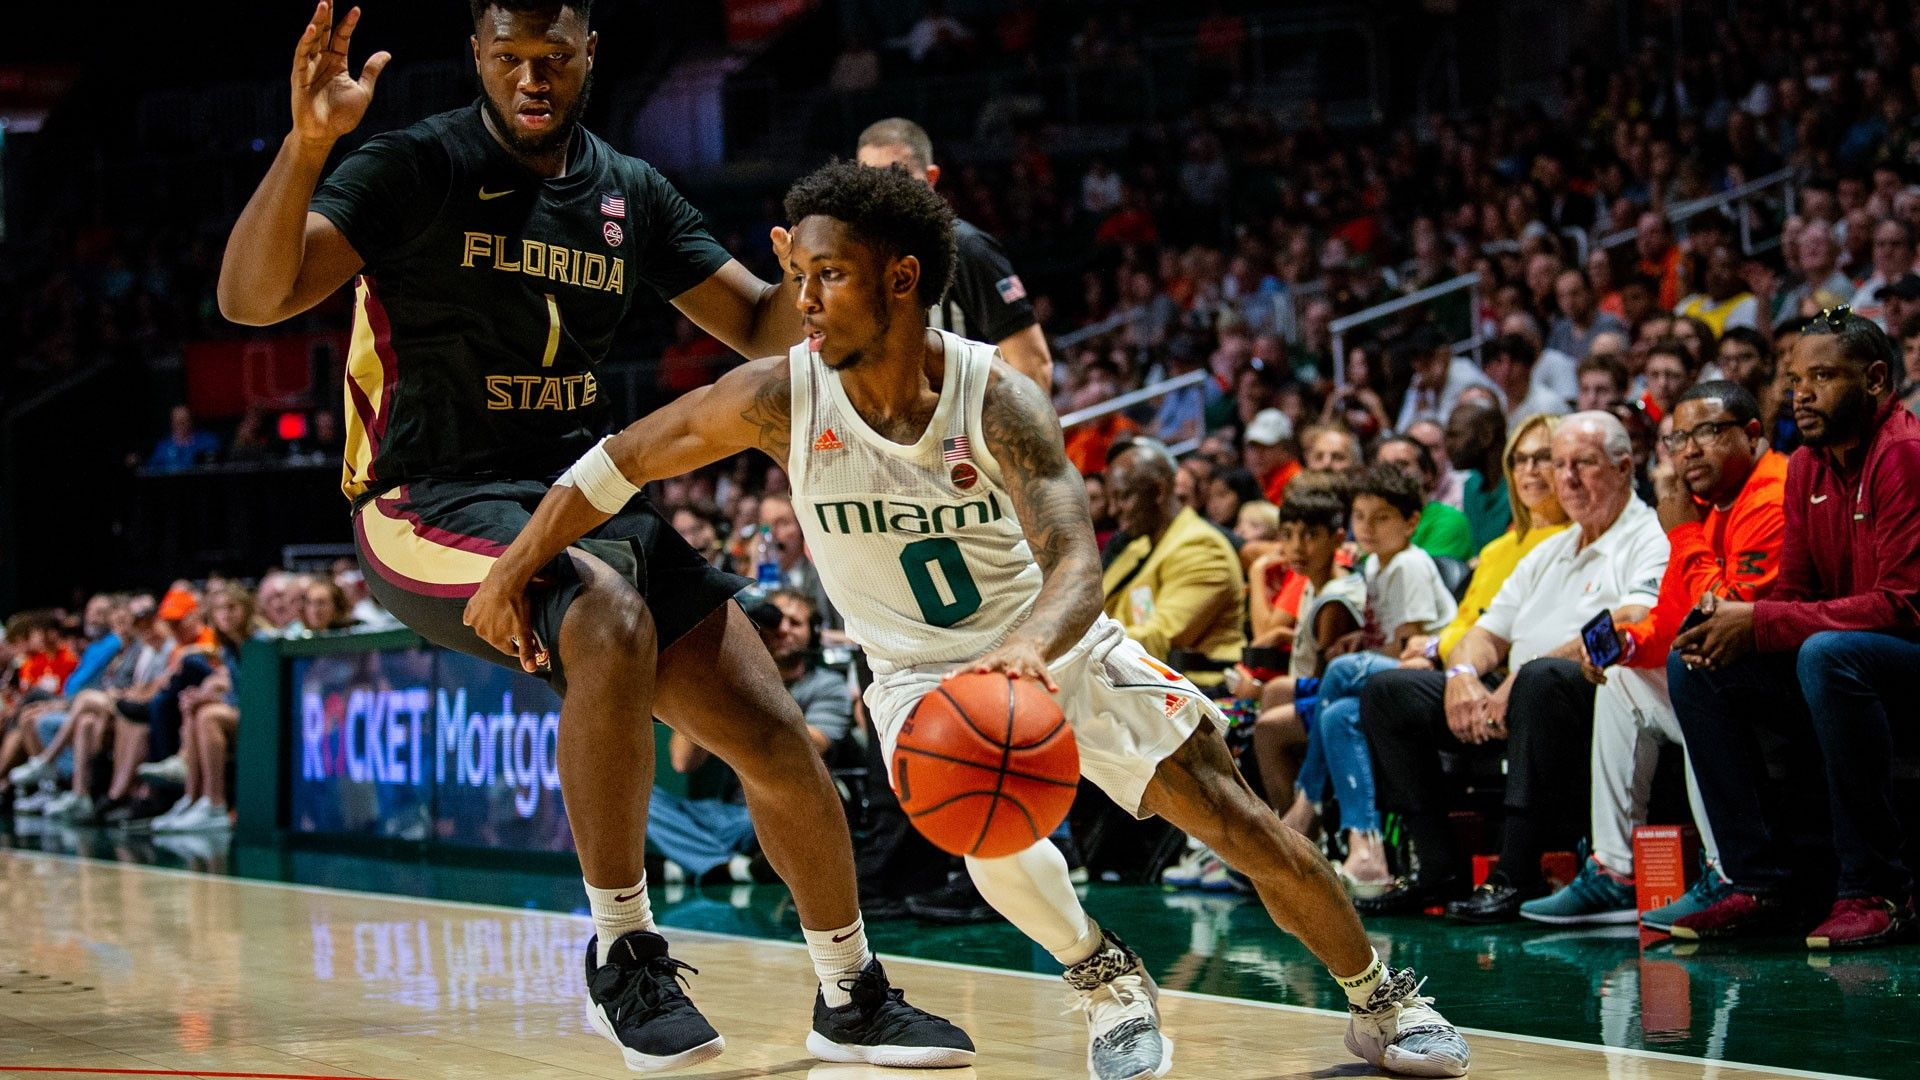 MBB Falls to Ninth-Ranked Florida State, 83-79, in OT